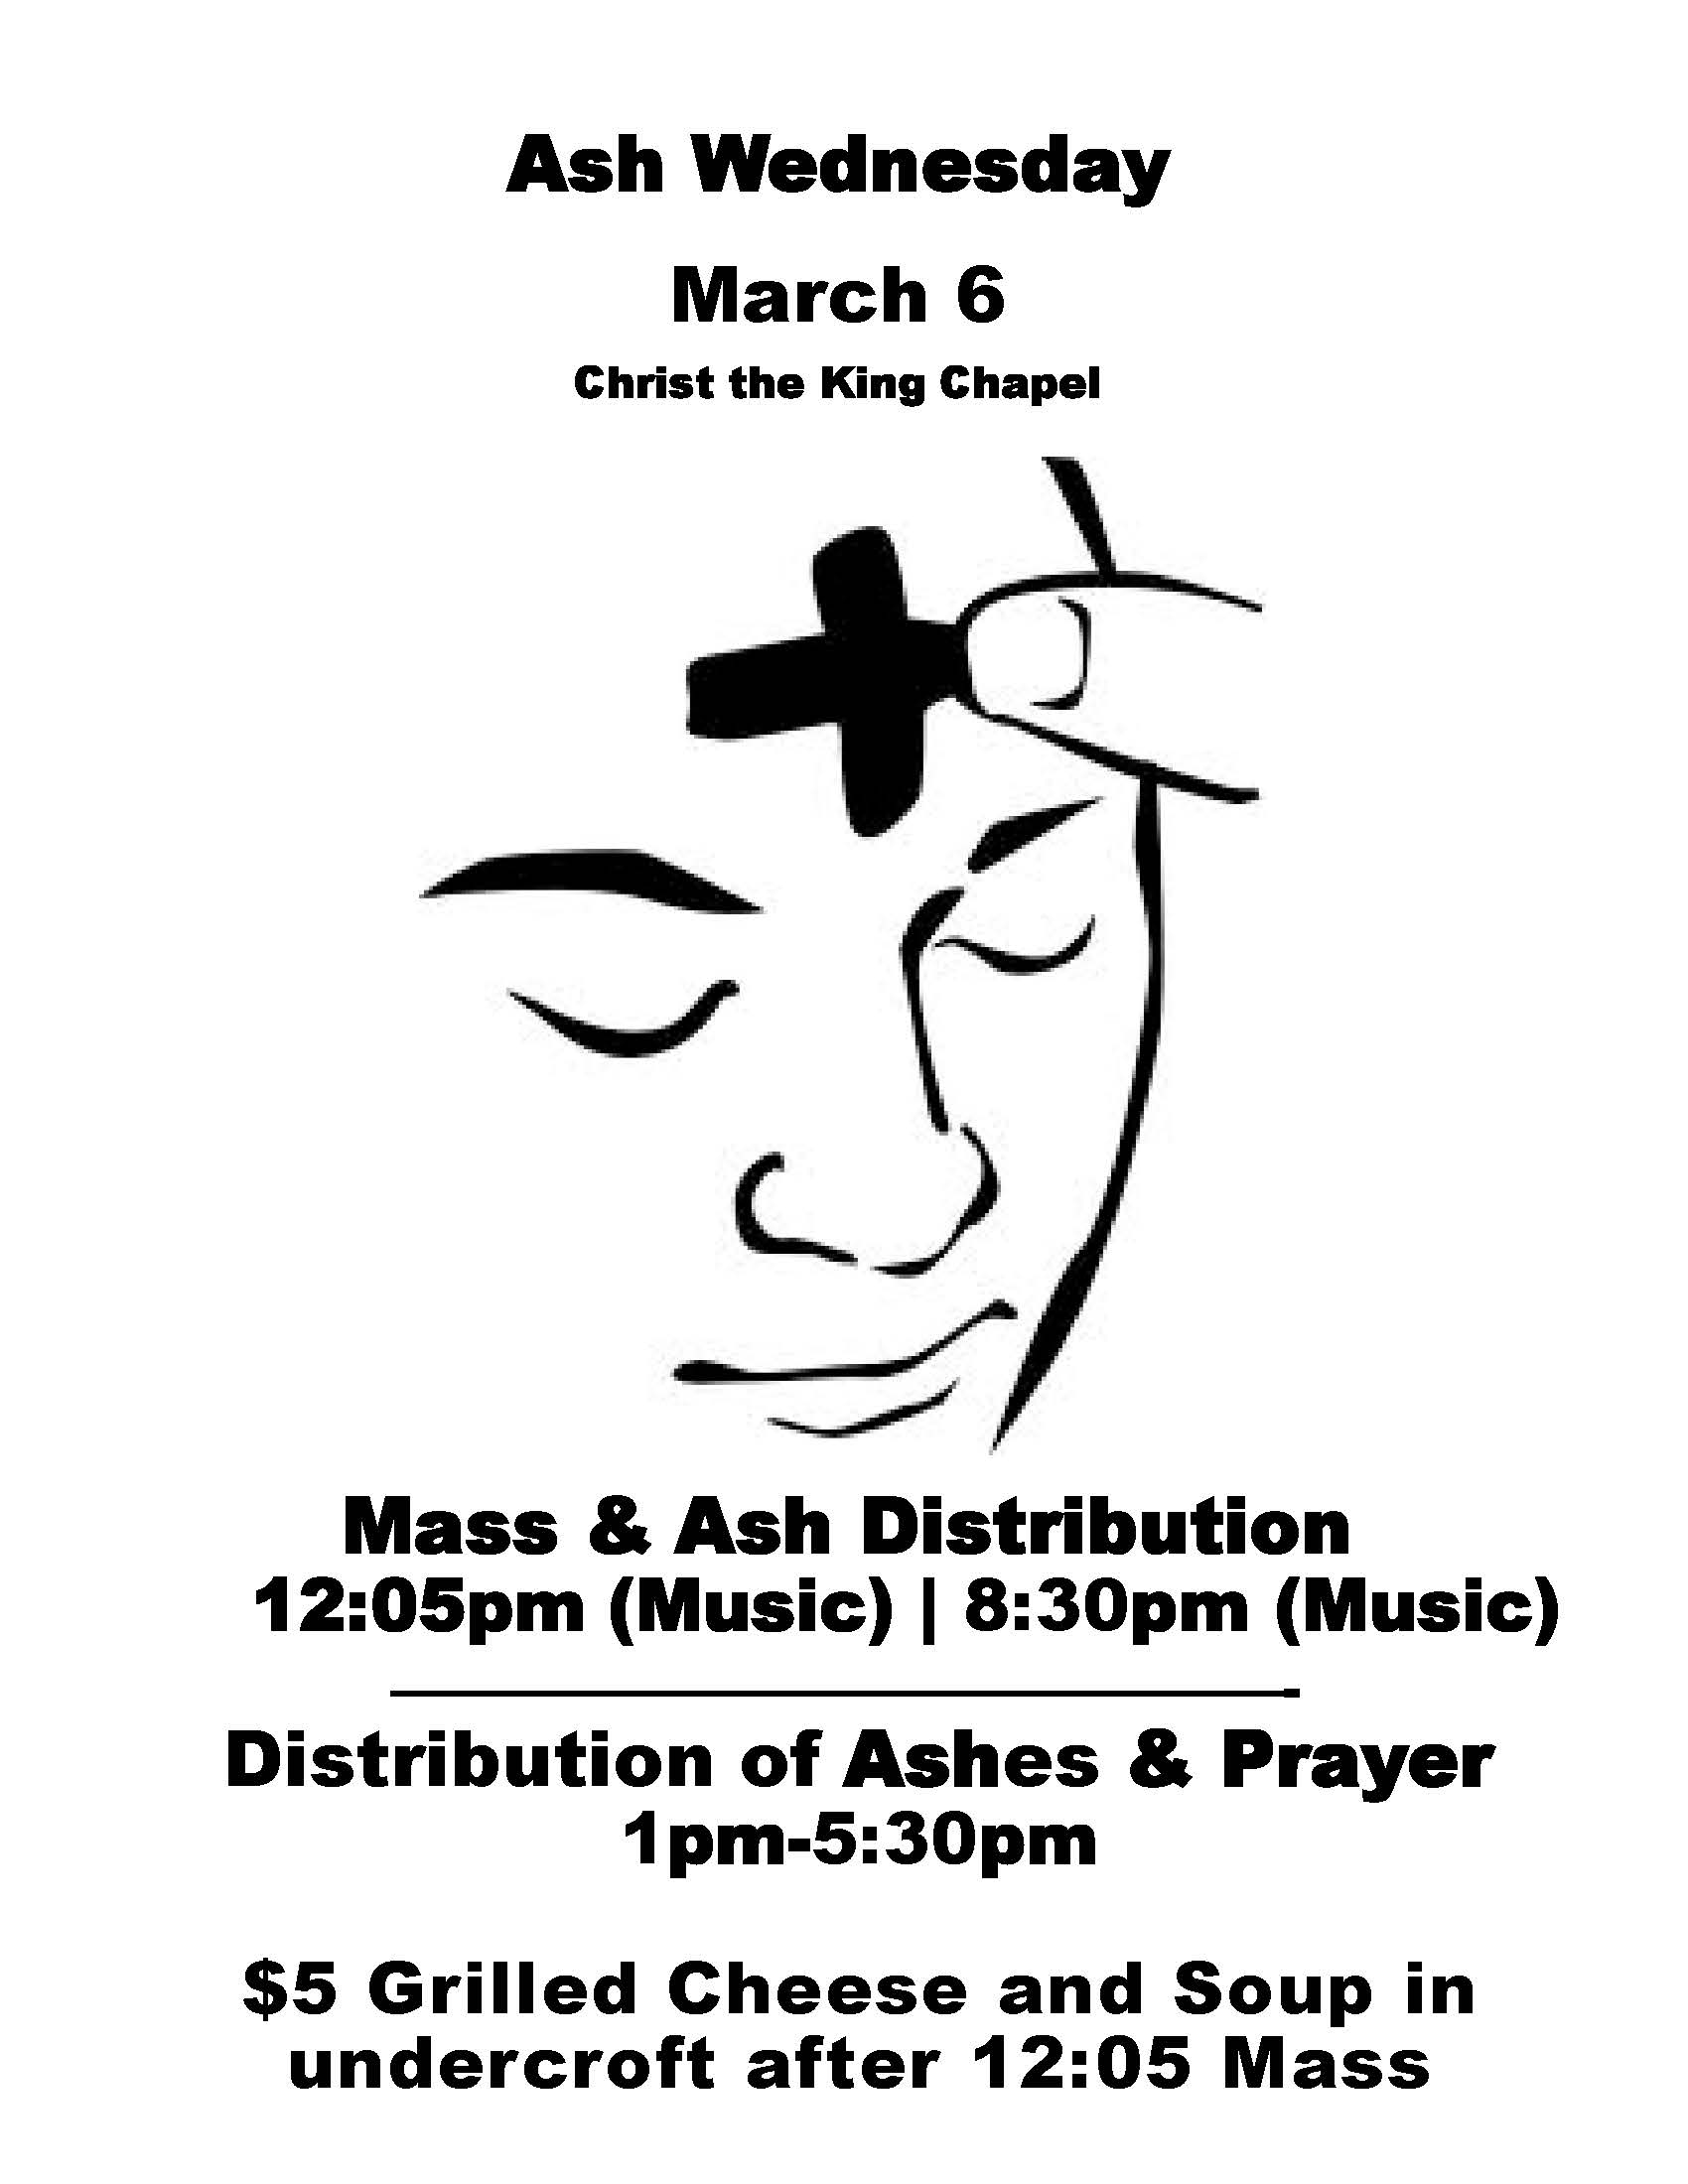 Ash Wednesday Flyer 2019.jpg